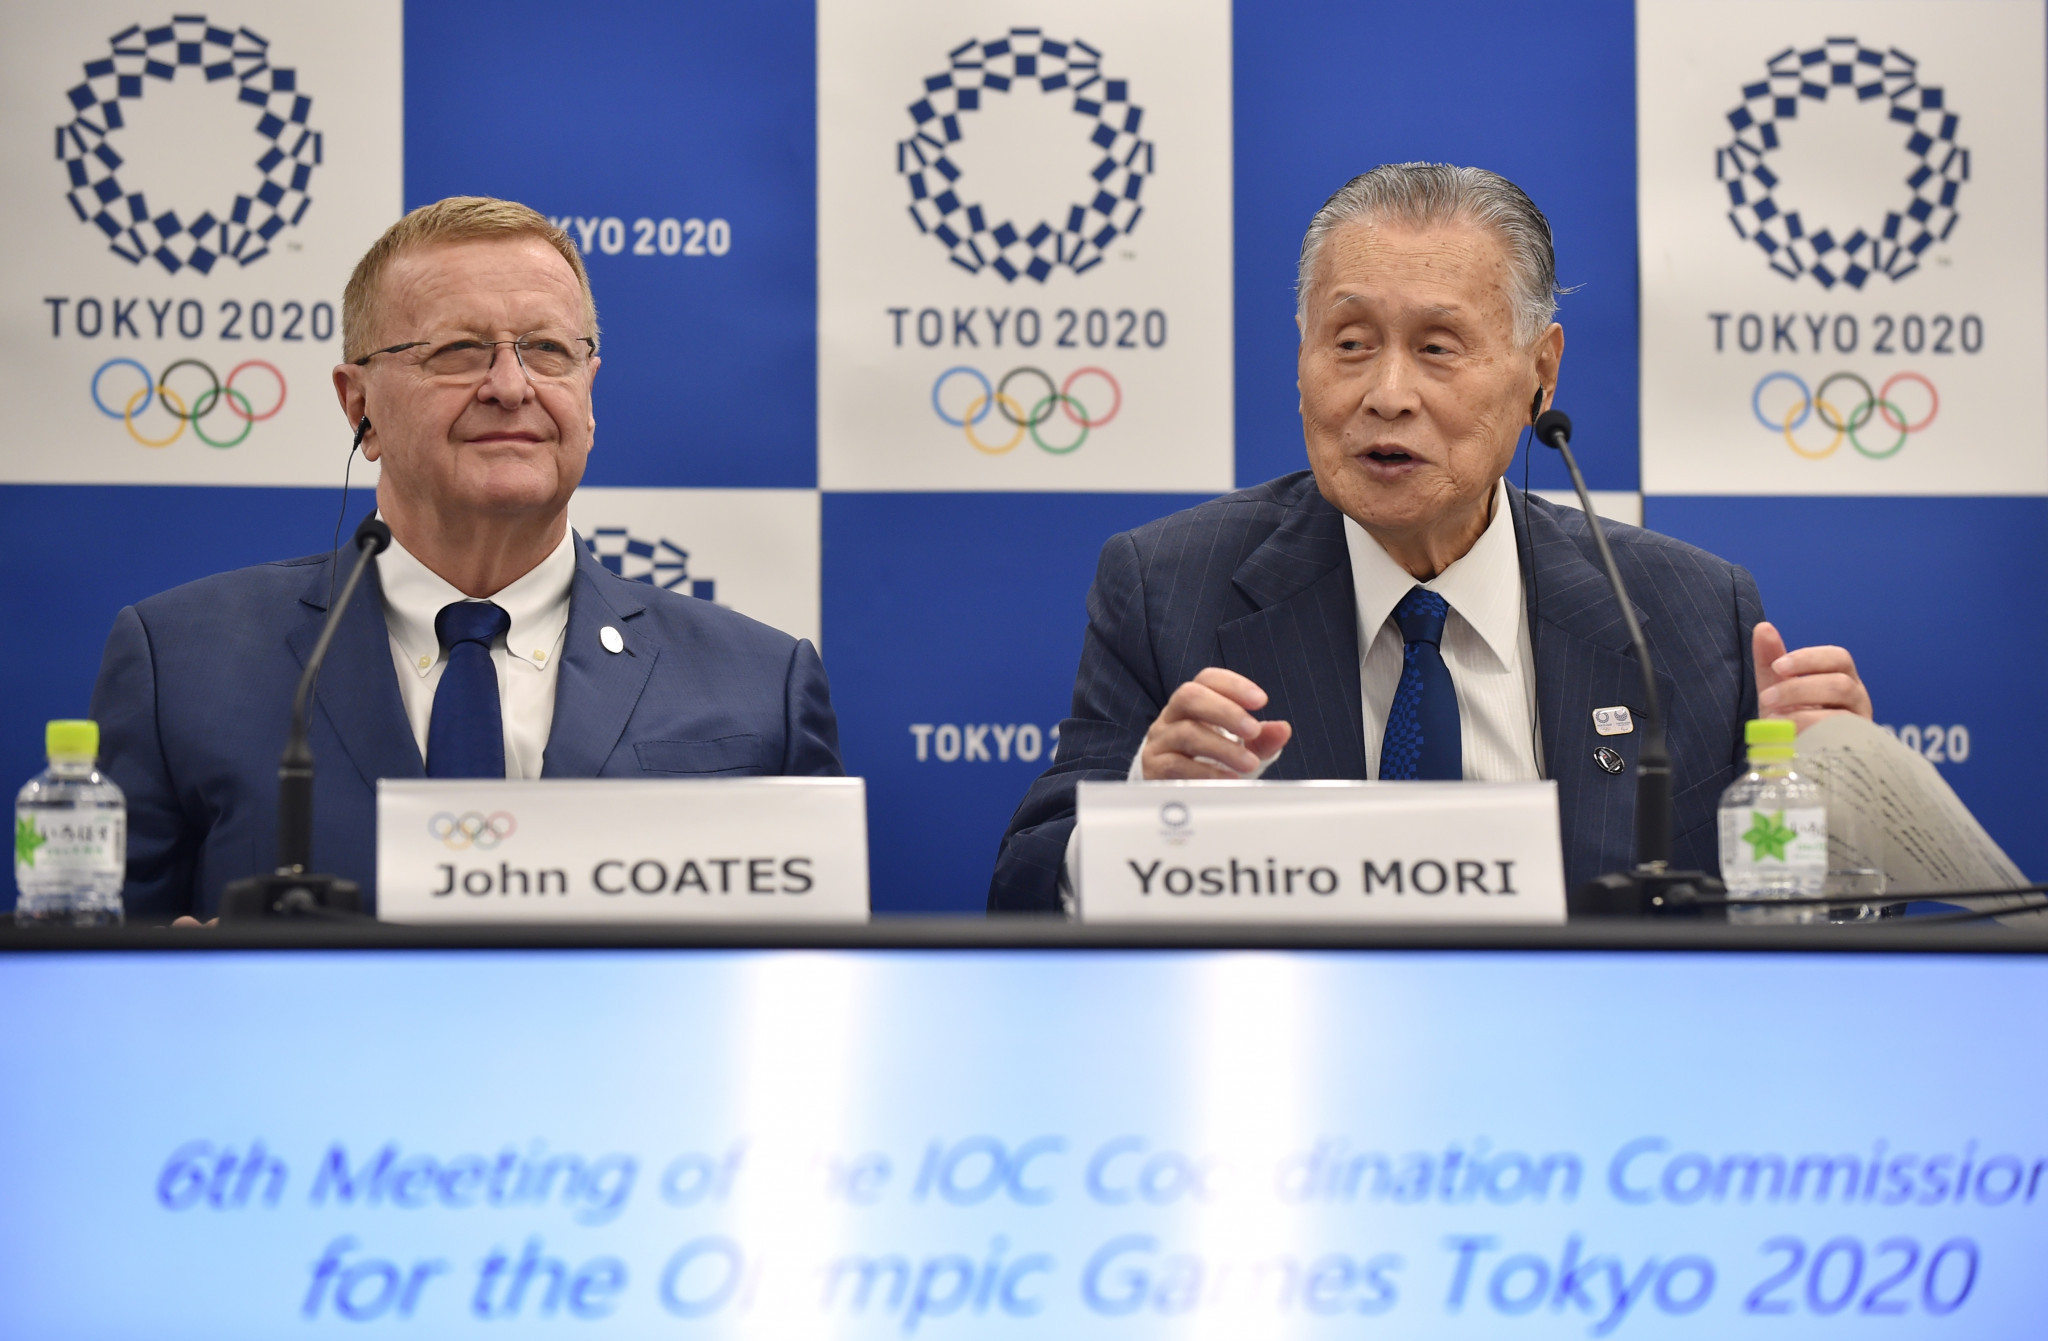 okyo 2020 President Yoshiro Mori has claimed the Olympic Torch Relay, due to start in Fukushima on March 26 in 2020, will get